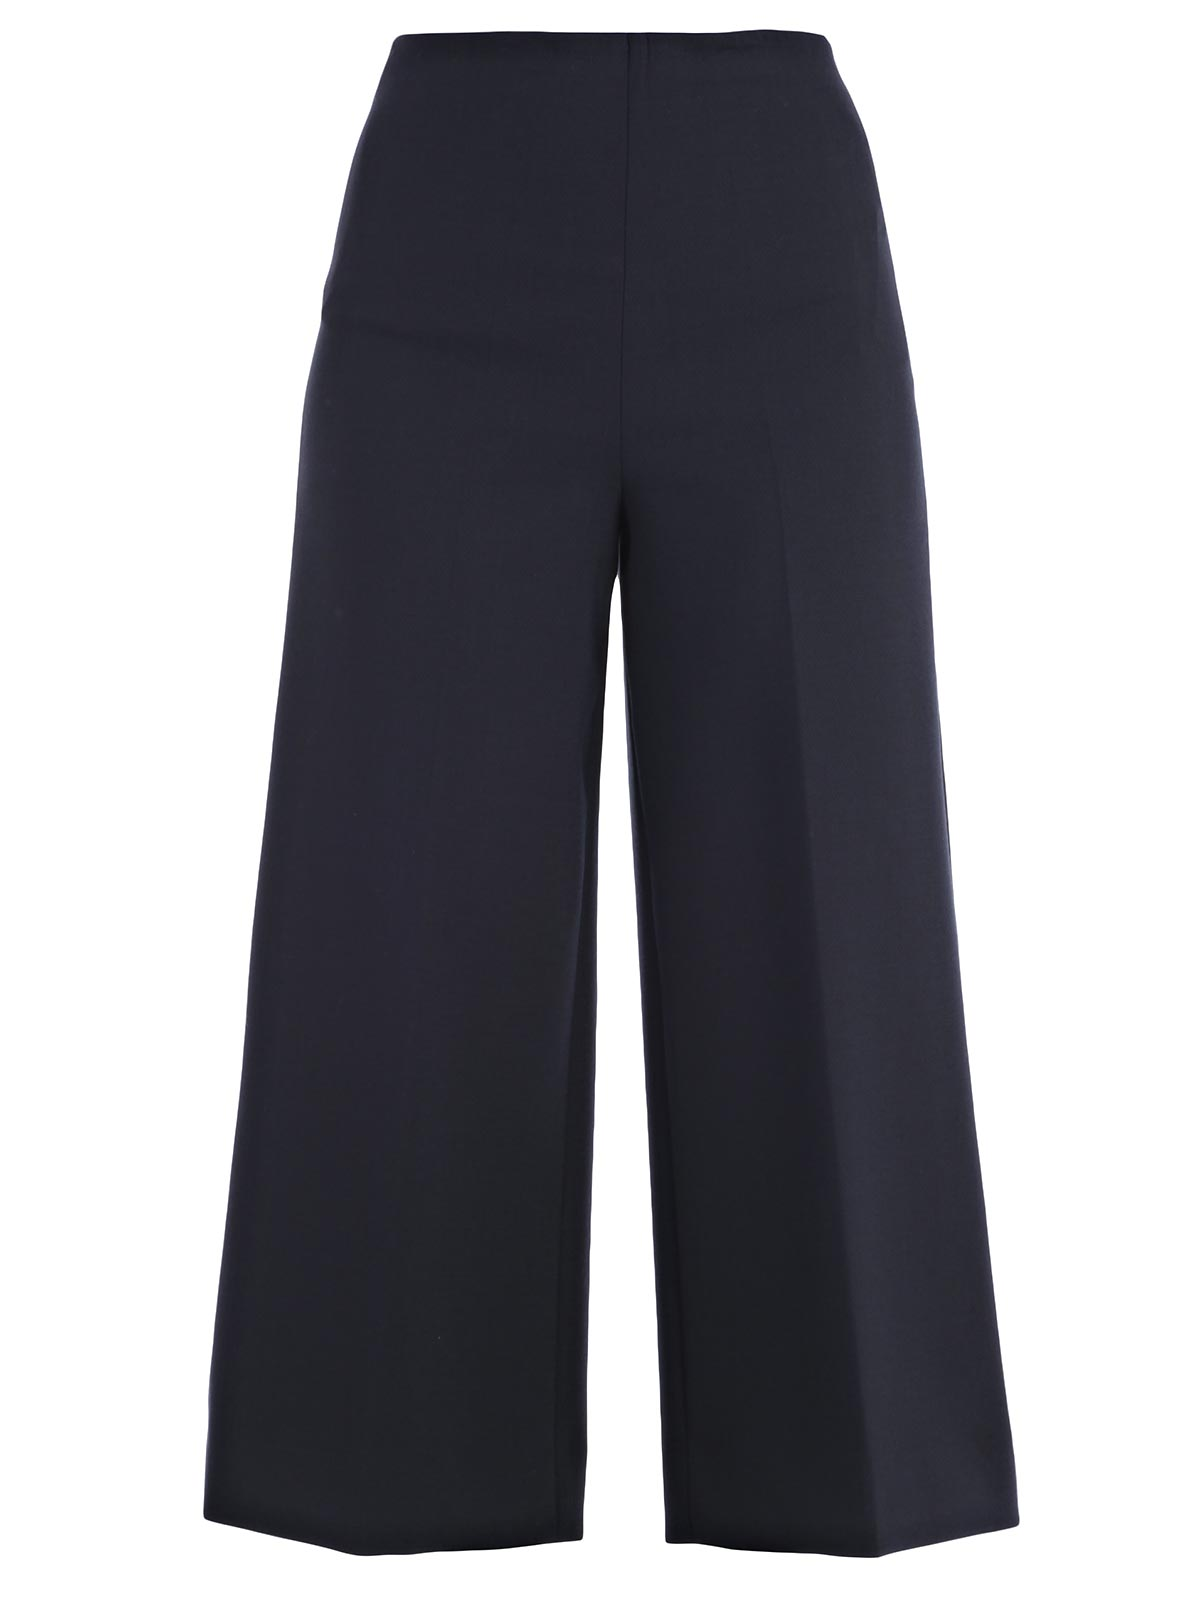 Picture of ERIKA CAVALLINI TROUSERS PANTALONE BESSIE COULOTTE